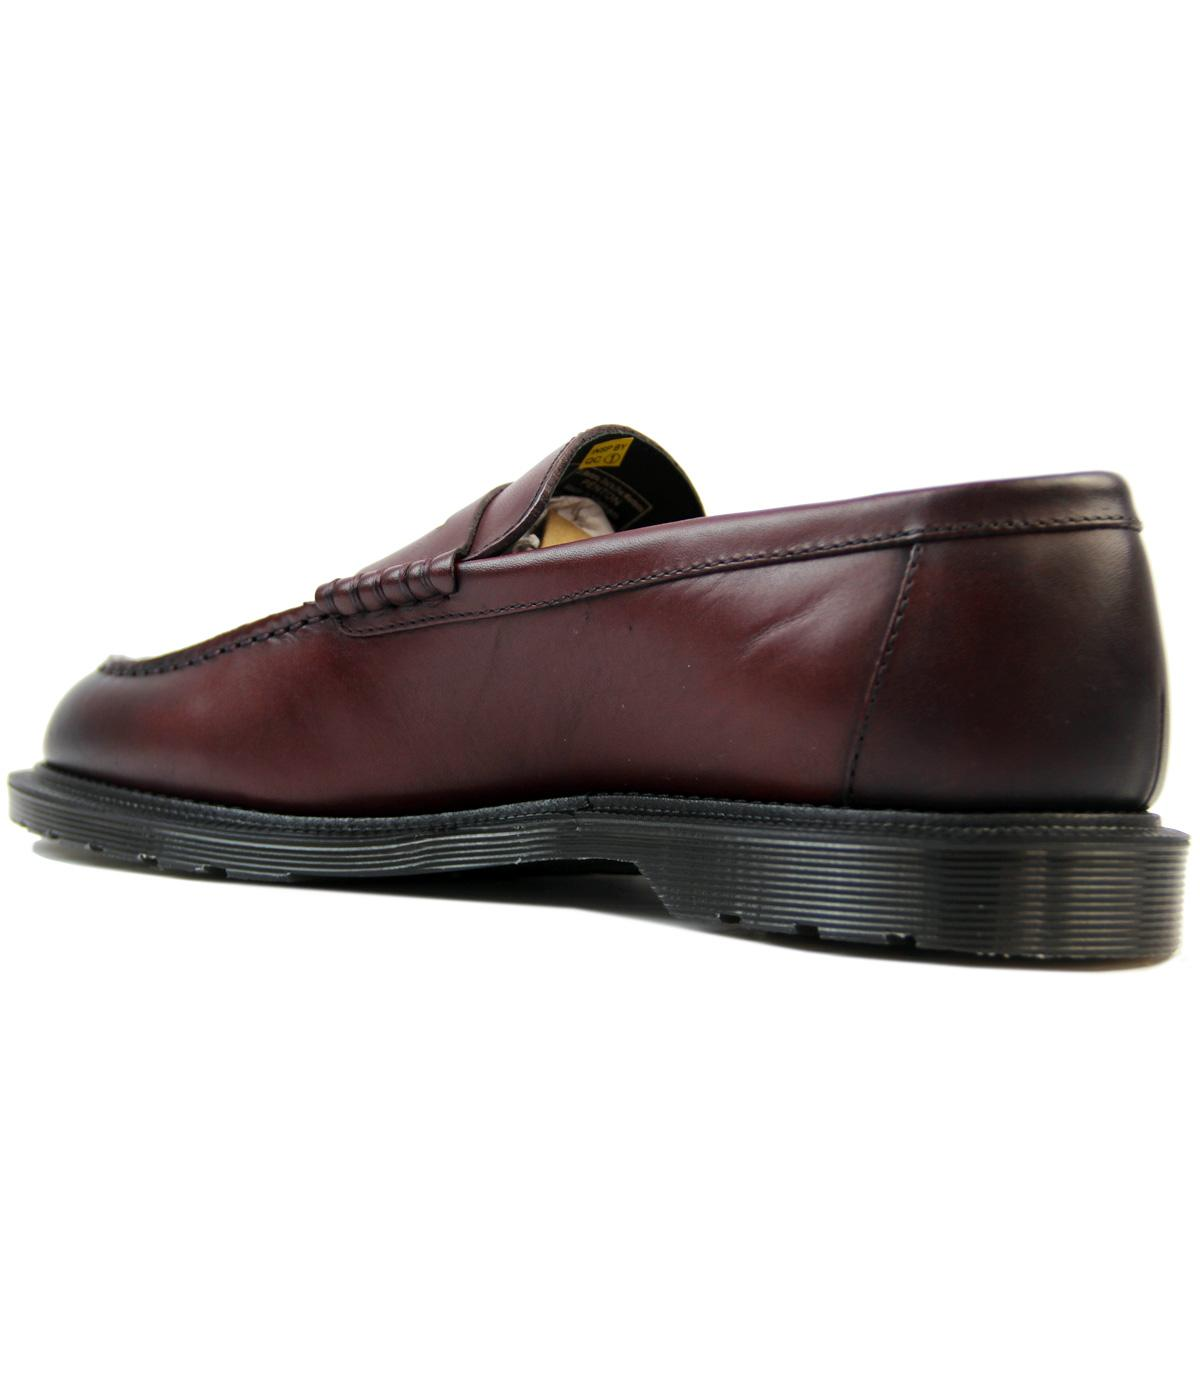 5e94fc5a6c7 DR MARTENS Henley Penton Retro Leather Bar Loafers in Cherry